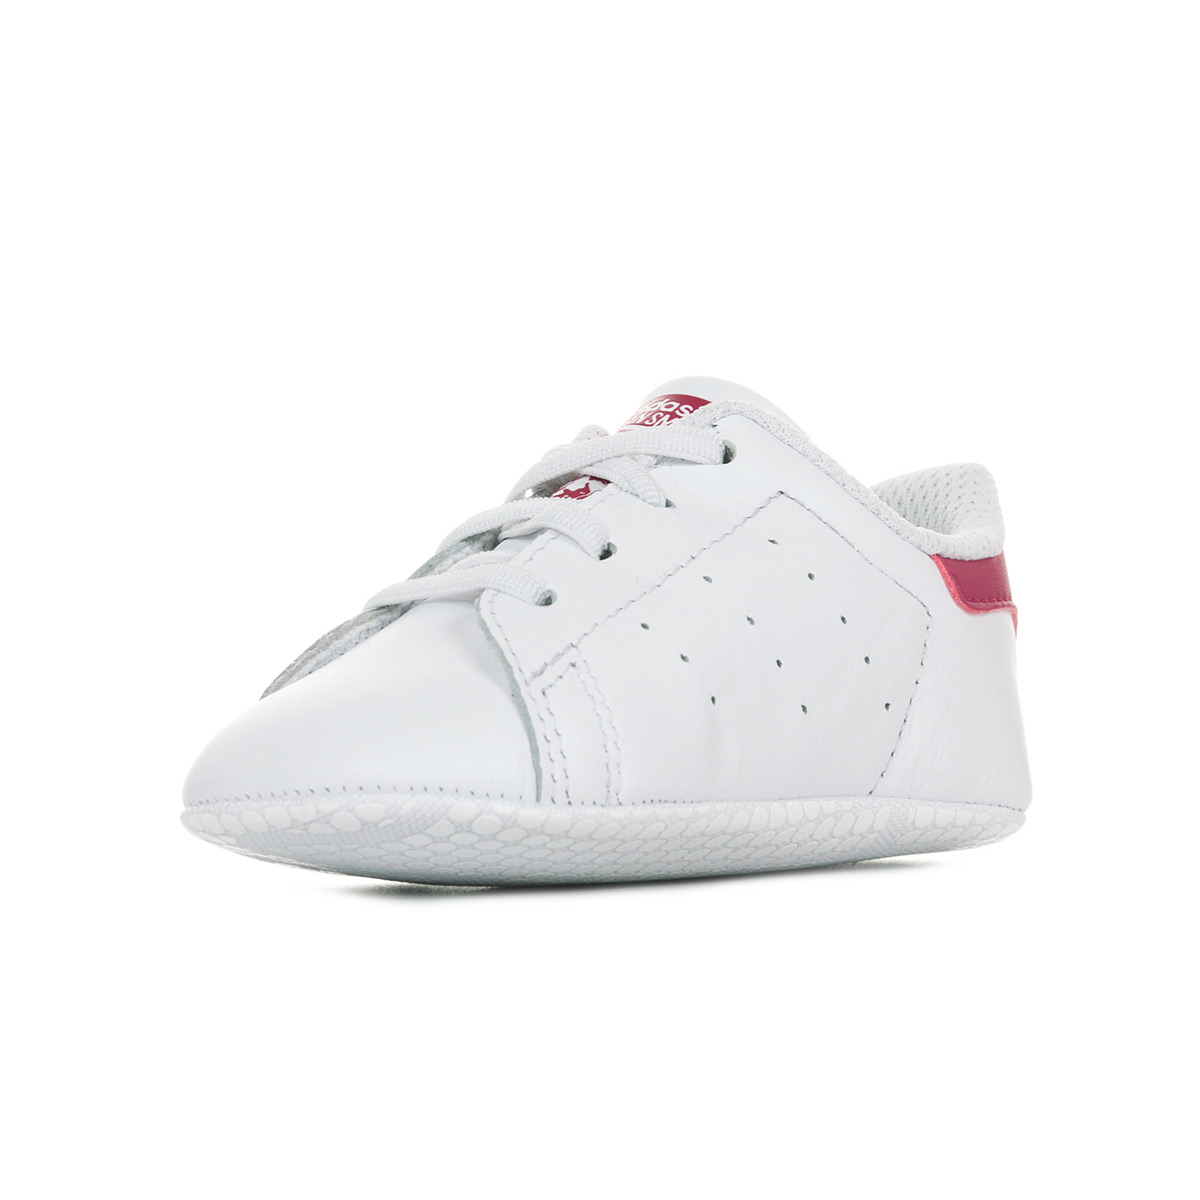 cheap for discount well known high quality Chaussures Baskets adidas bébé Stan Smith Crib taille Blanc ...